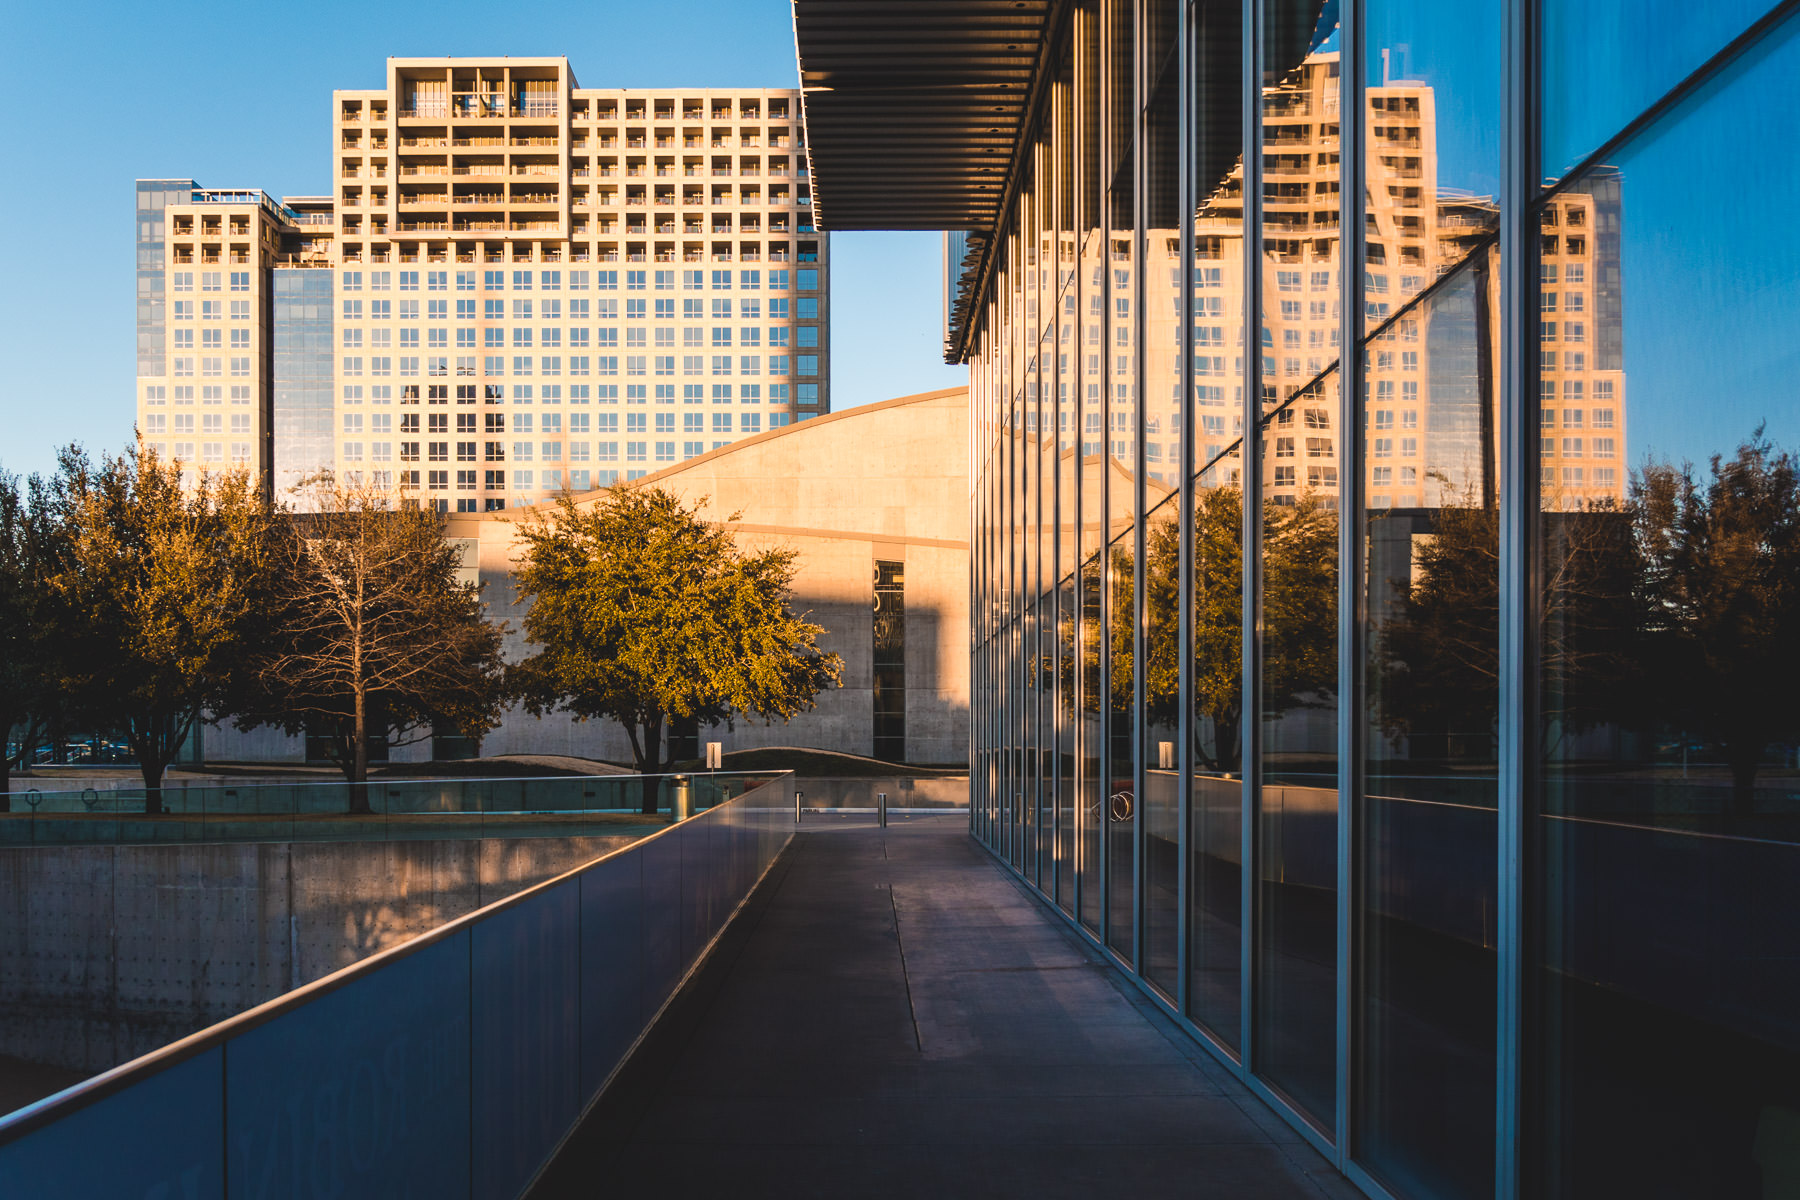 The Dallas Arts District's One Arts Plaza is reflected in the glass facade of the adjacent Wyly Theatre.